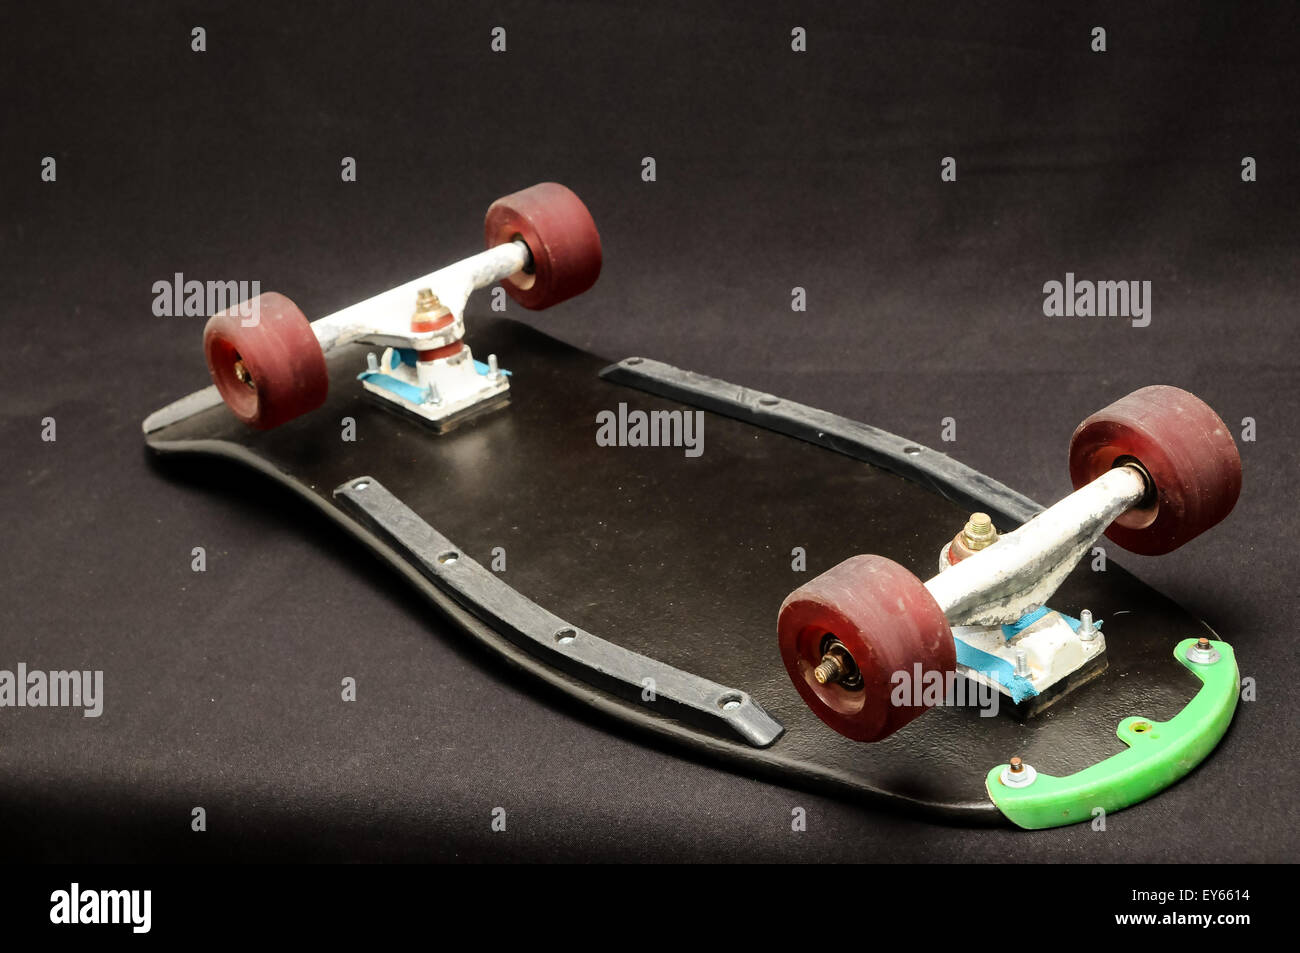 c32b9a725e Old Used Wooden Skateboard Stock Photo: 85573632 - Alamy